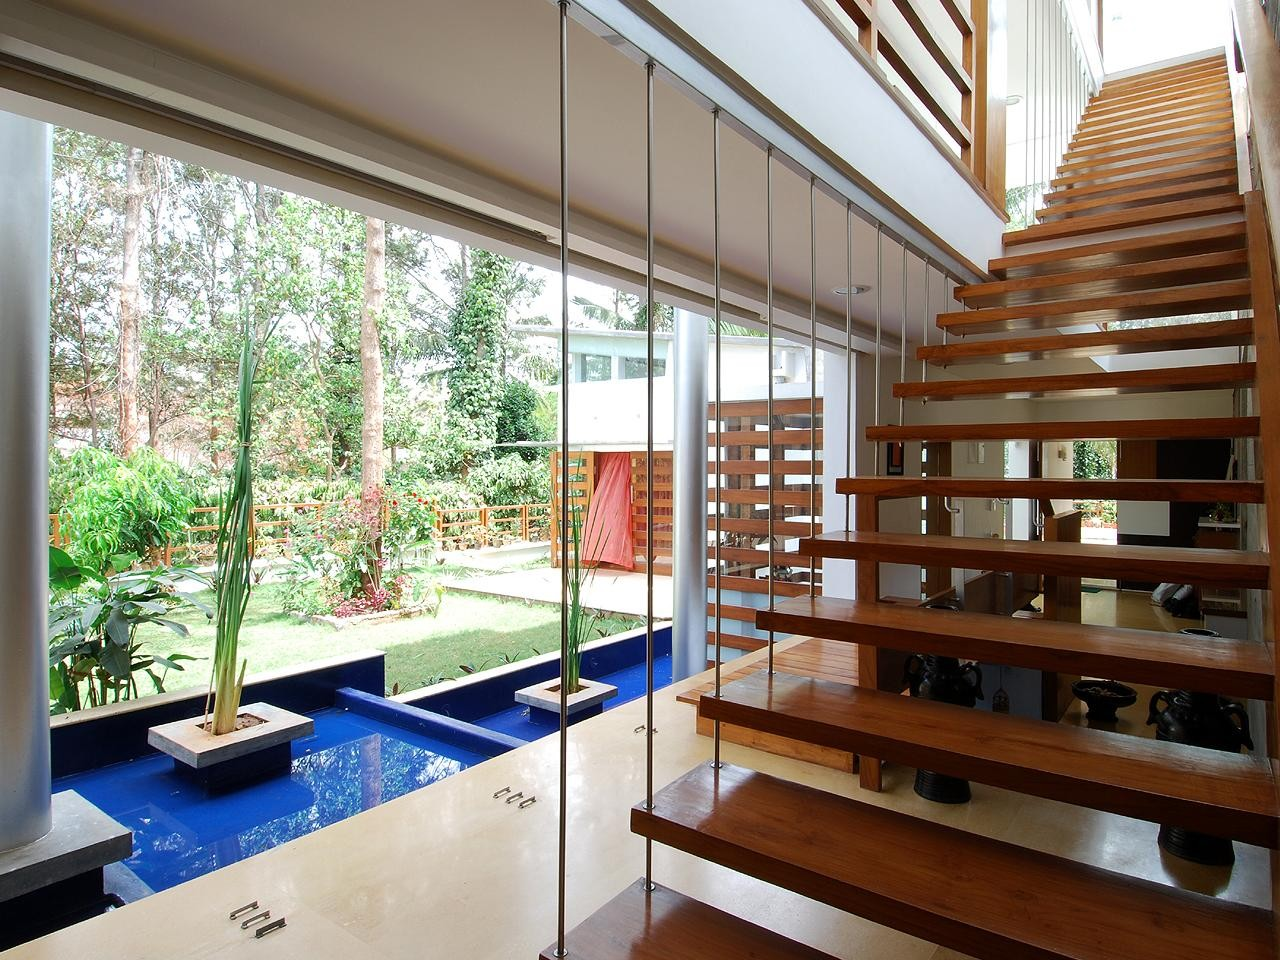 Gallery of house of pavilions architecture paradigm 10 for Aslam architects interior designs bangalore